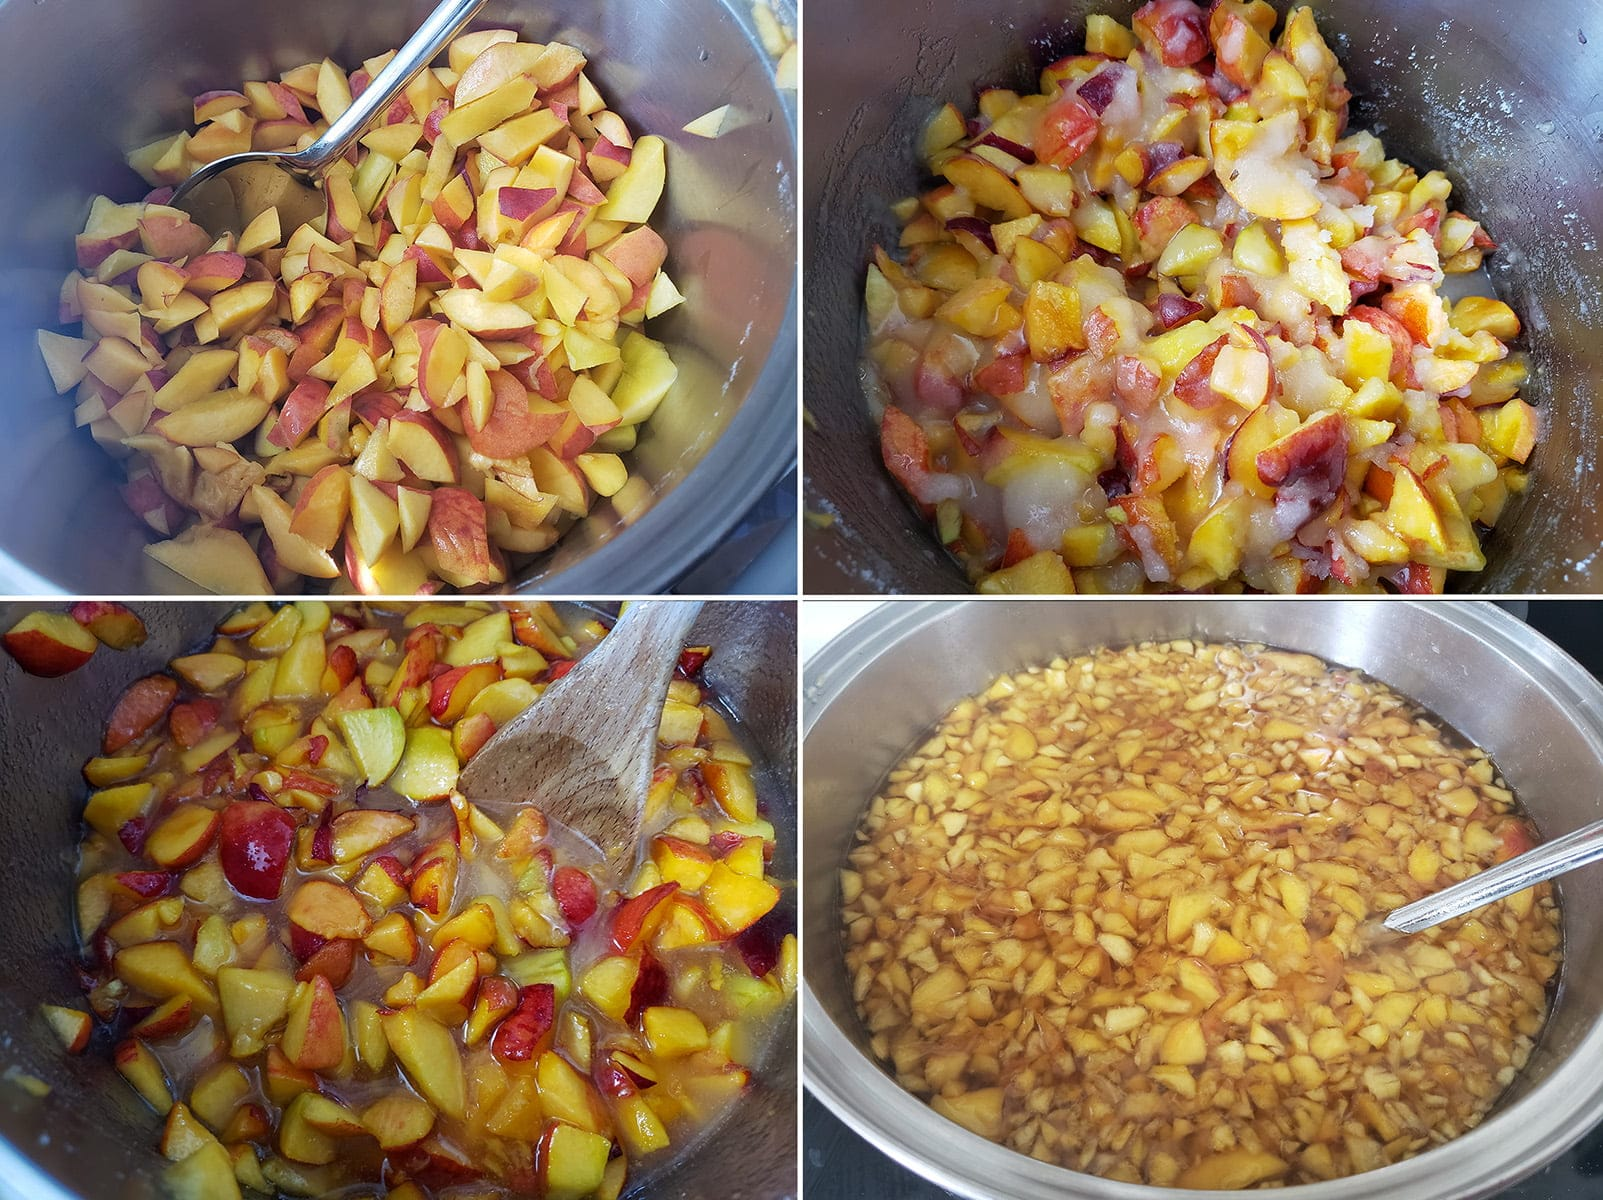 A 4 photo collage howing the progression from chopped peaches, to chopped peaches with sugar, to pacerated peaches in their own juice, to a pot with chopped peaches, sugar, and water.